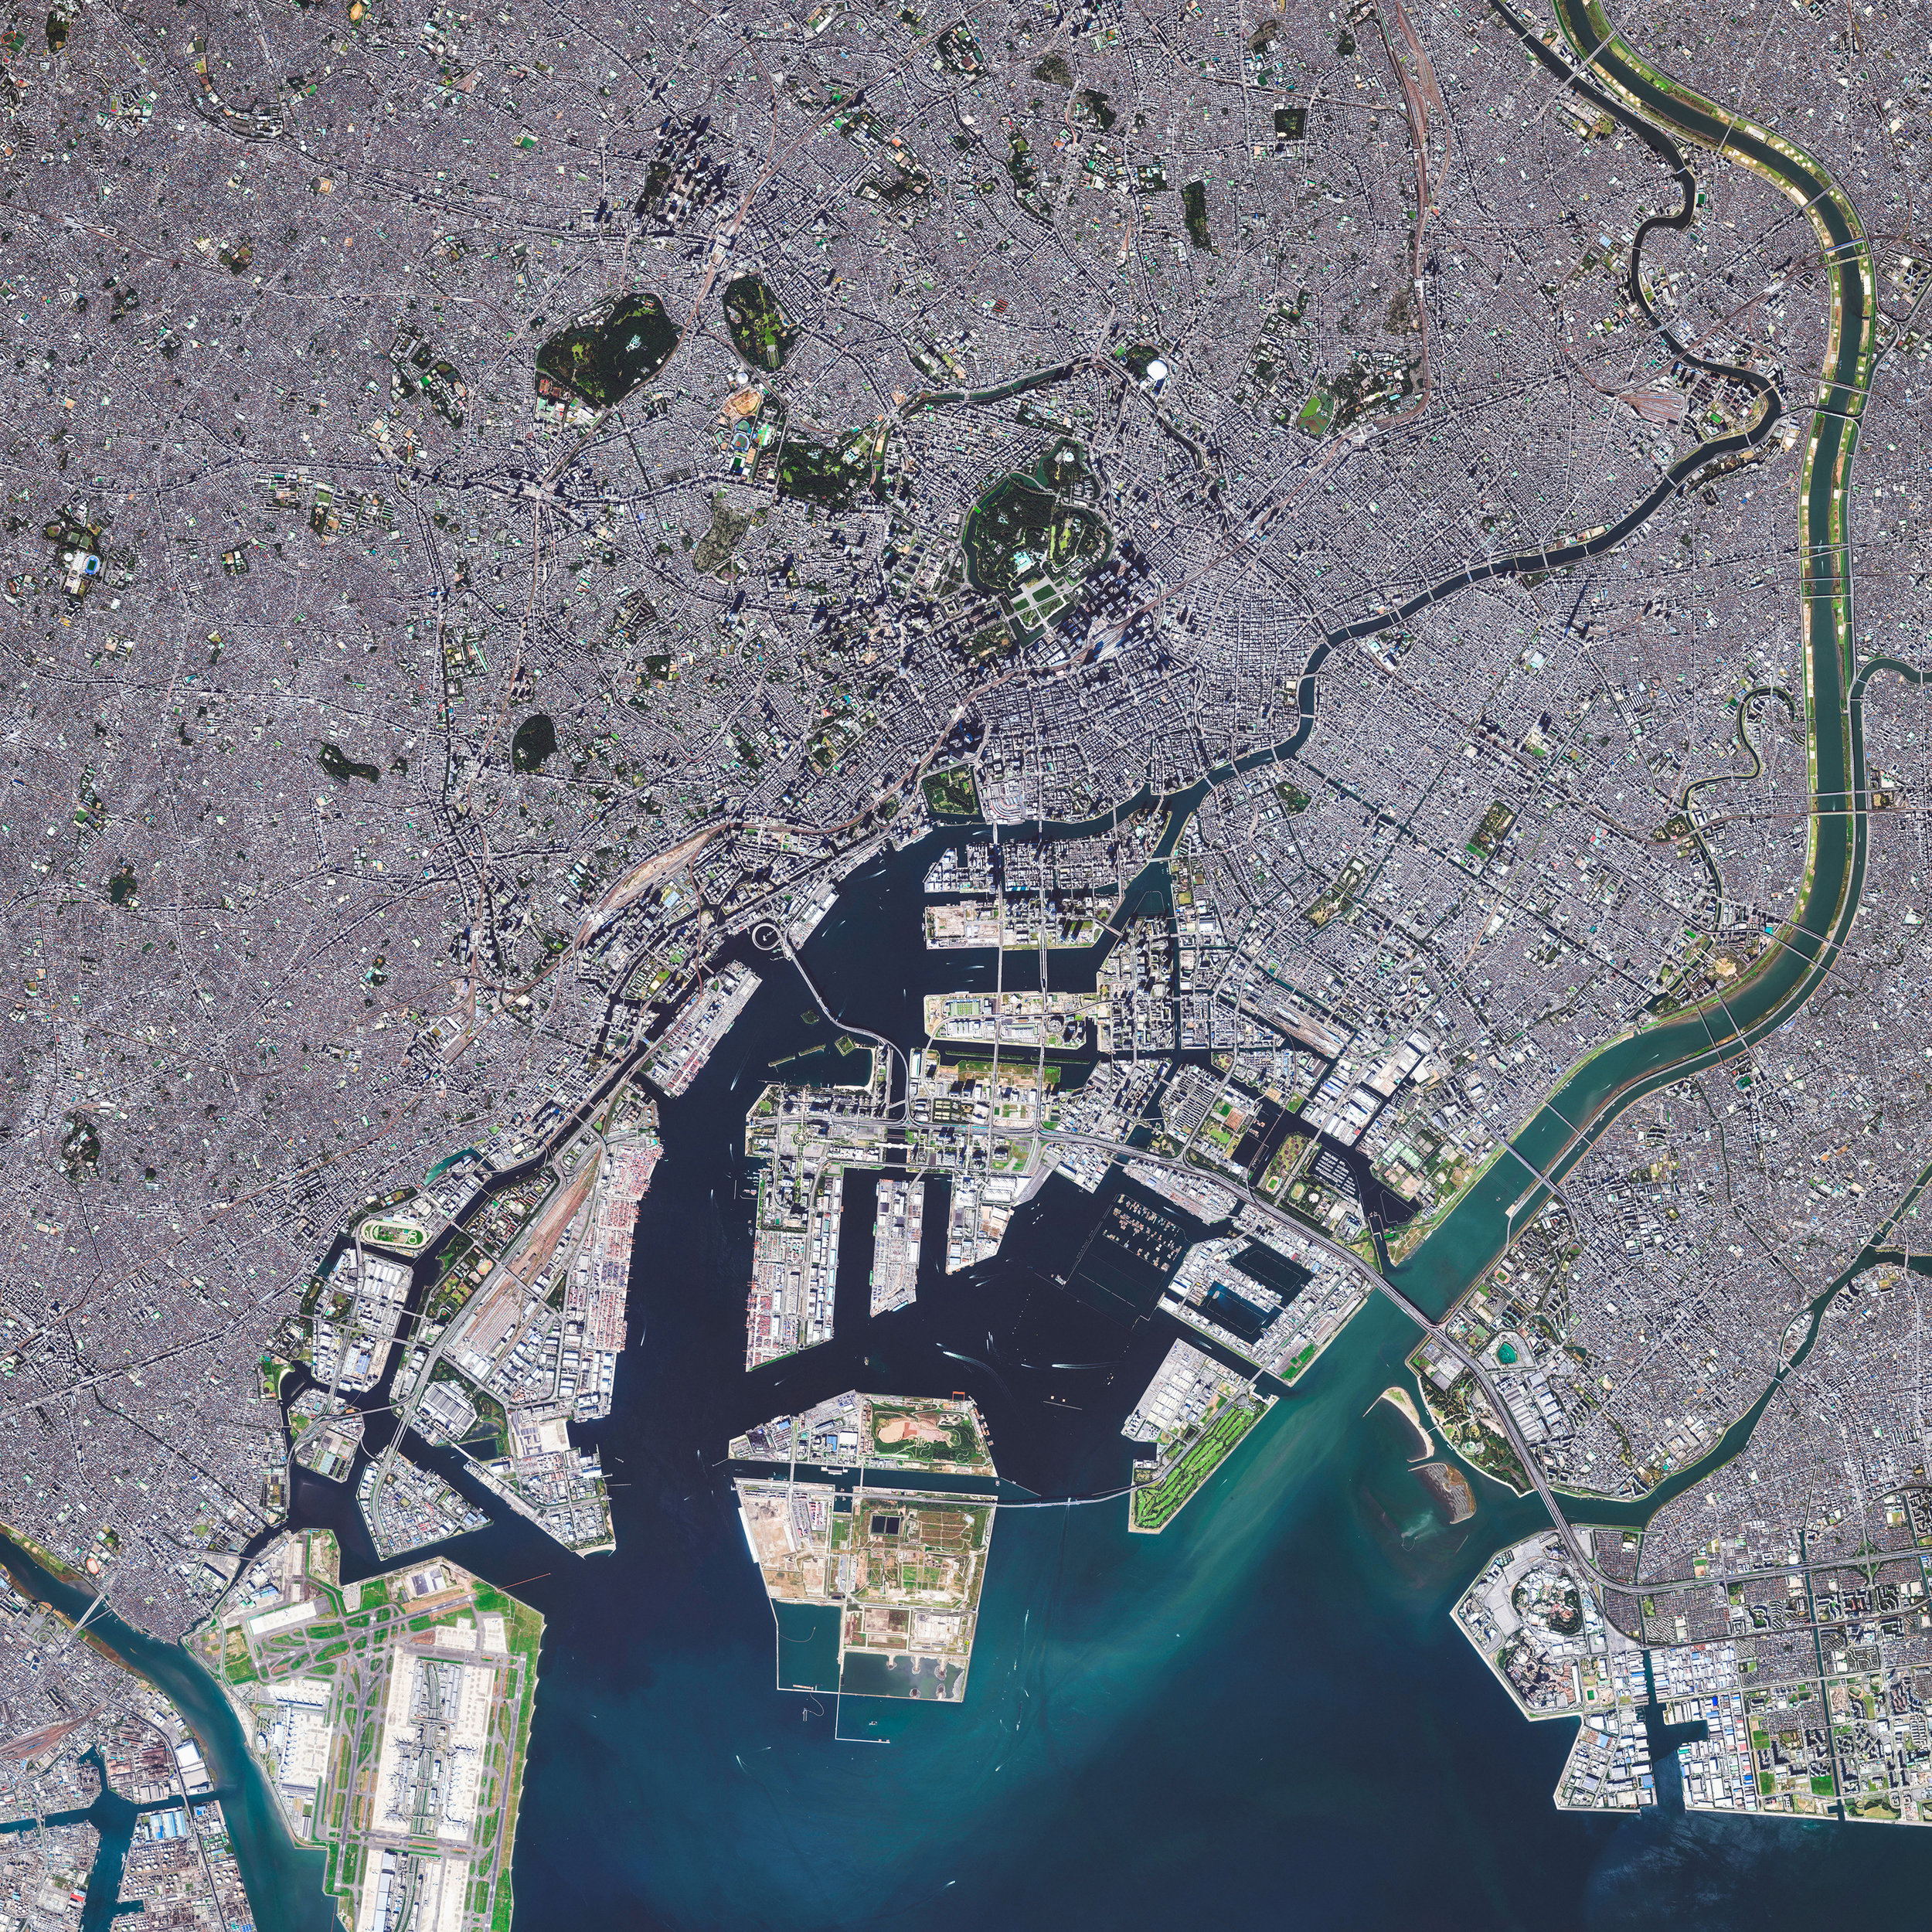 """Tokyo is the capital of Japan and the most populous metropolitan area in the world, with upwards of 38 million residents. Also, as of 2014, it had the largest metropolitan economy in the world, boasting a total gross domestic product (GDP) of $1.6 trillion. This Overview captures just a small portion of the city on Tokyo Bay, with the Arakawa River featured on the right-hand side.  35°40'00.0""""N, 139°49'00.0""""E  Source imagery: DigitalGlobe"""